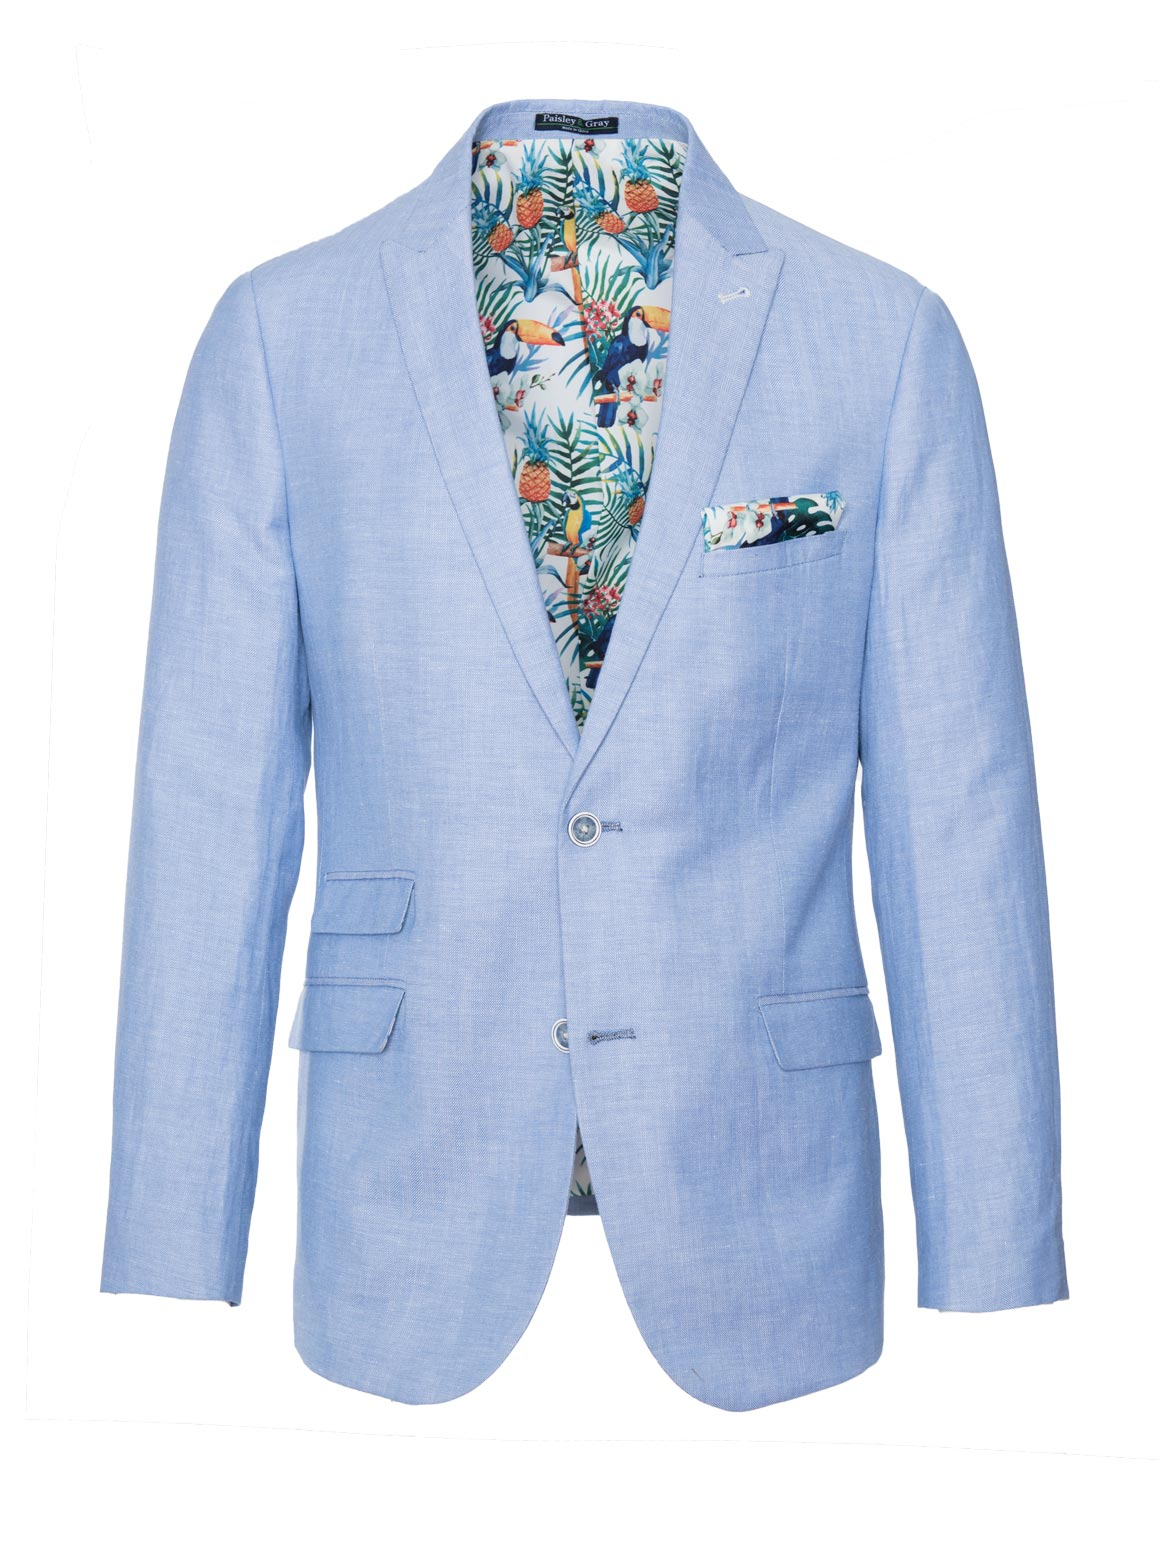 paisley & gray light blue herringbone slim fit peak lapel suit jacket 2137J vibrant white rainforest lining and pocket square blue marbled buttons flap pockets